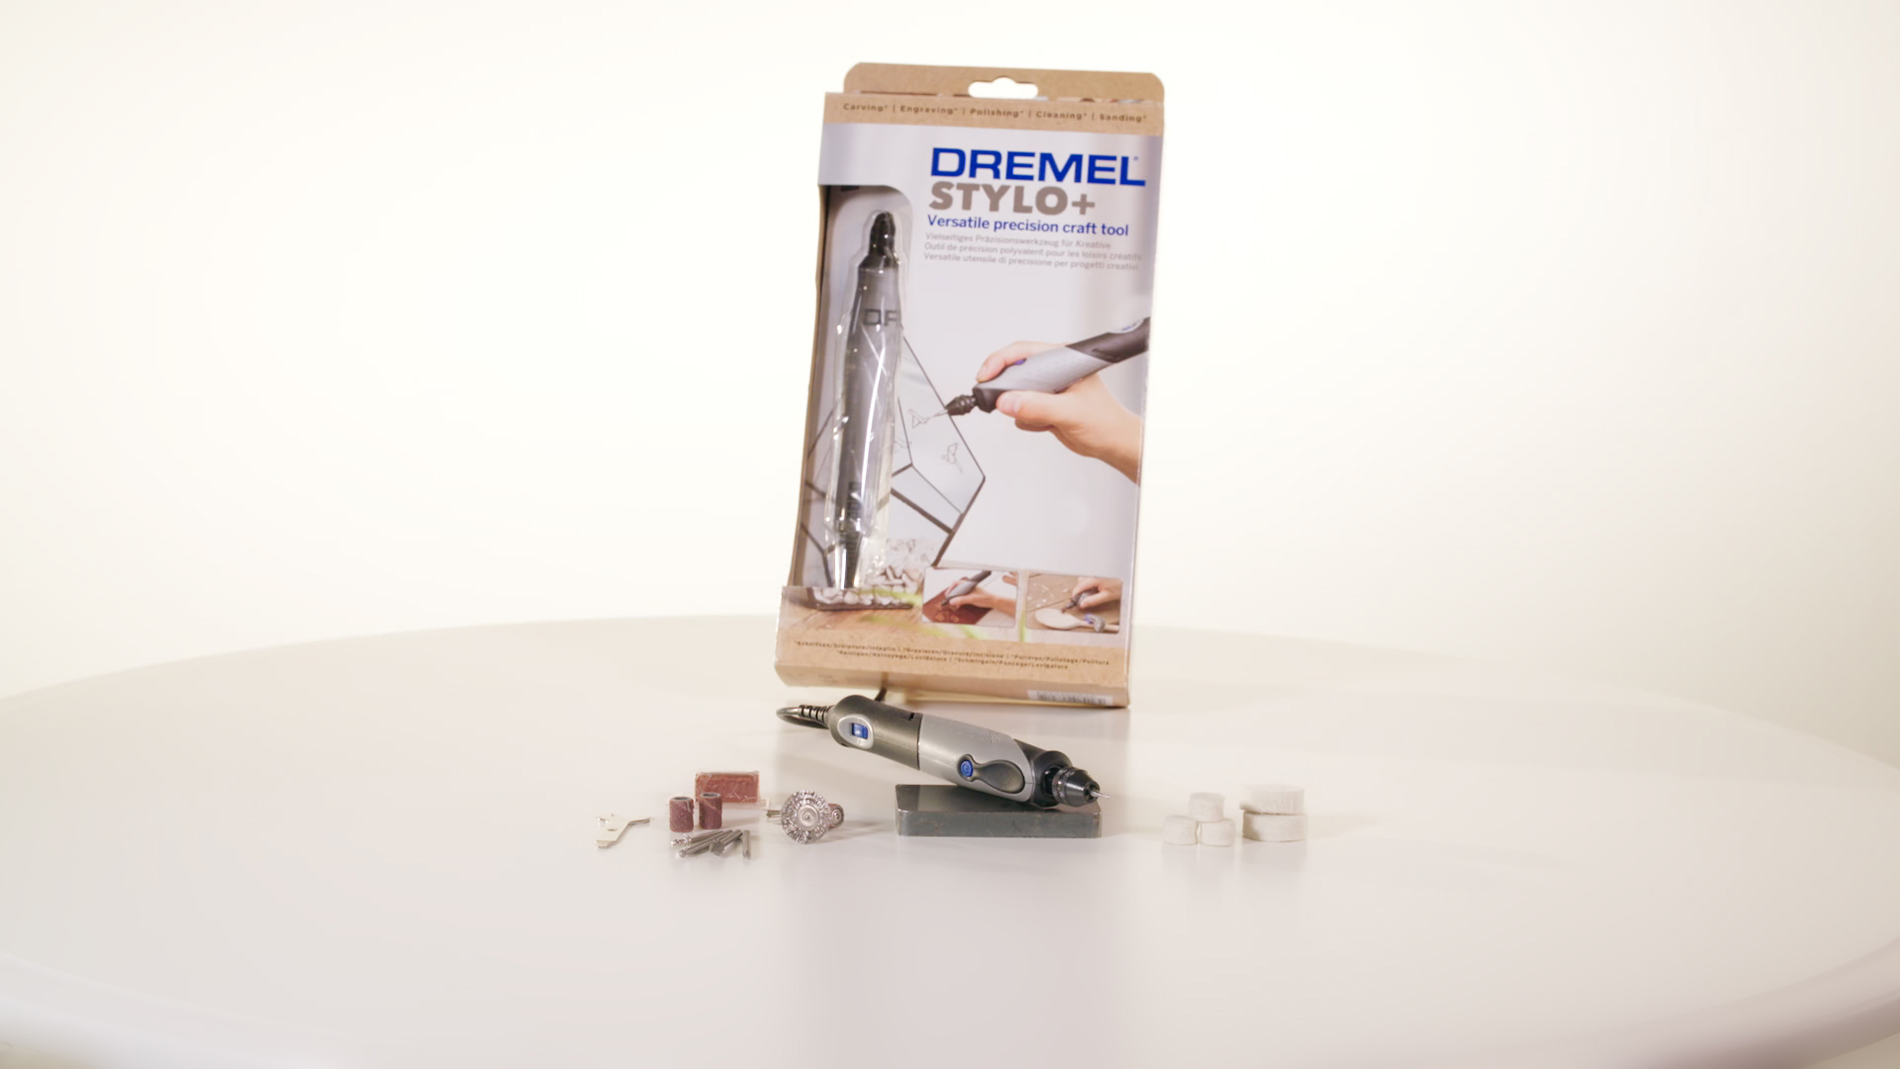 Creative Impulse Award 1st place: Dremel 'Dremel Stylo+'